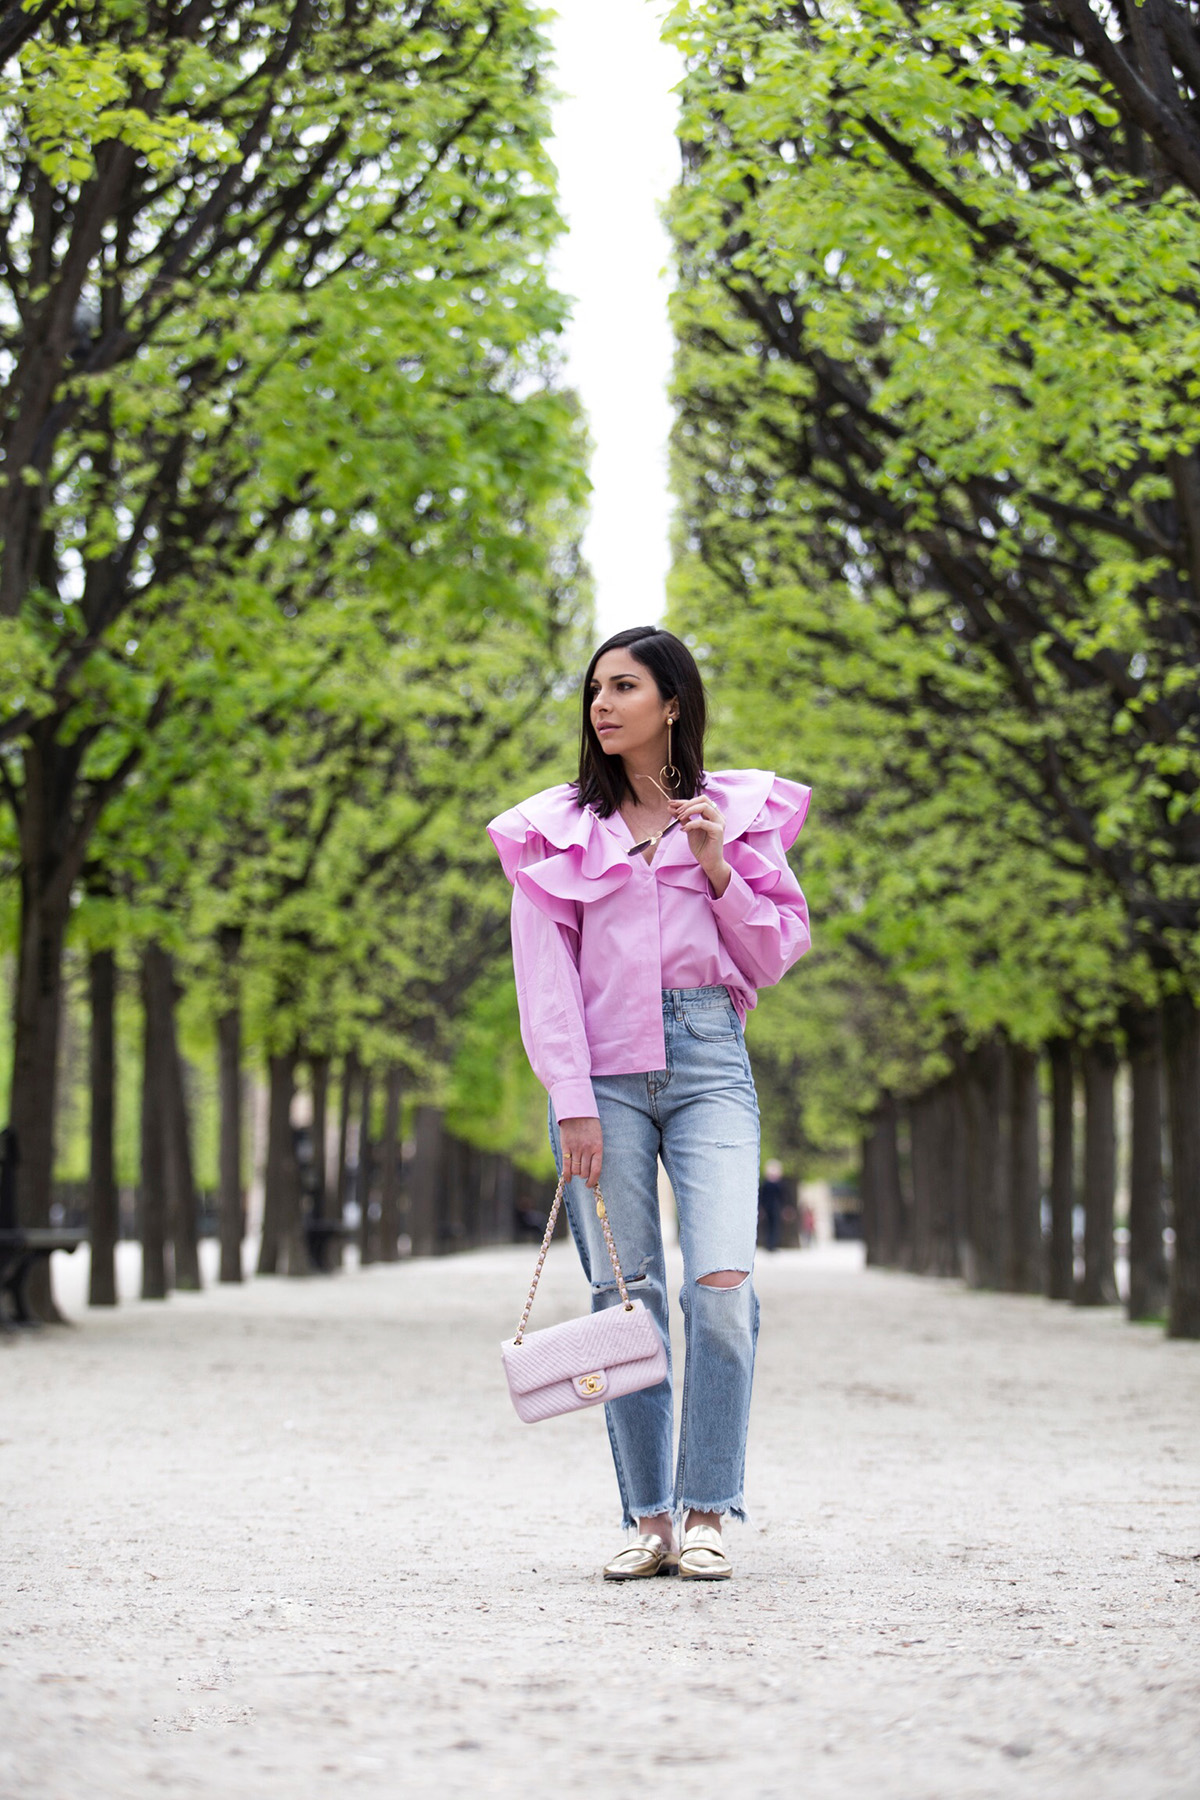 Stella Asteria Fashion & Lifestyle Blogger wearing pink ruffle blouse, jeans and pink Chanel bag